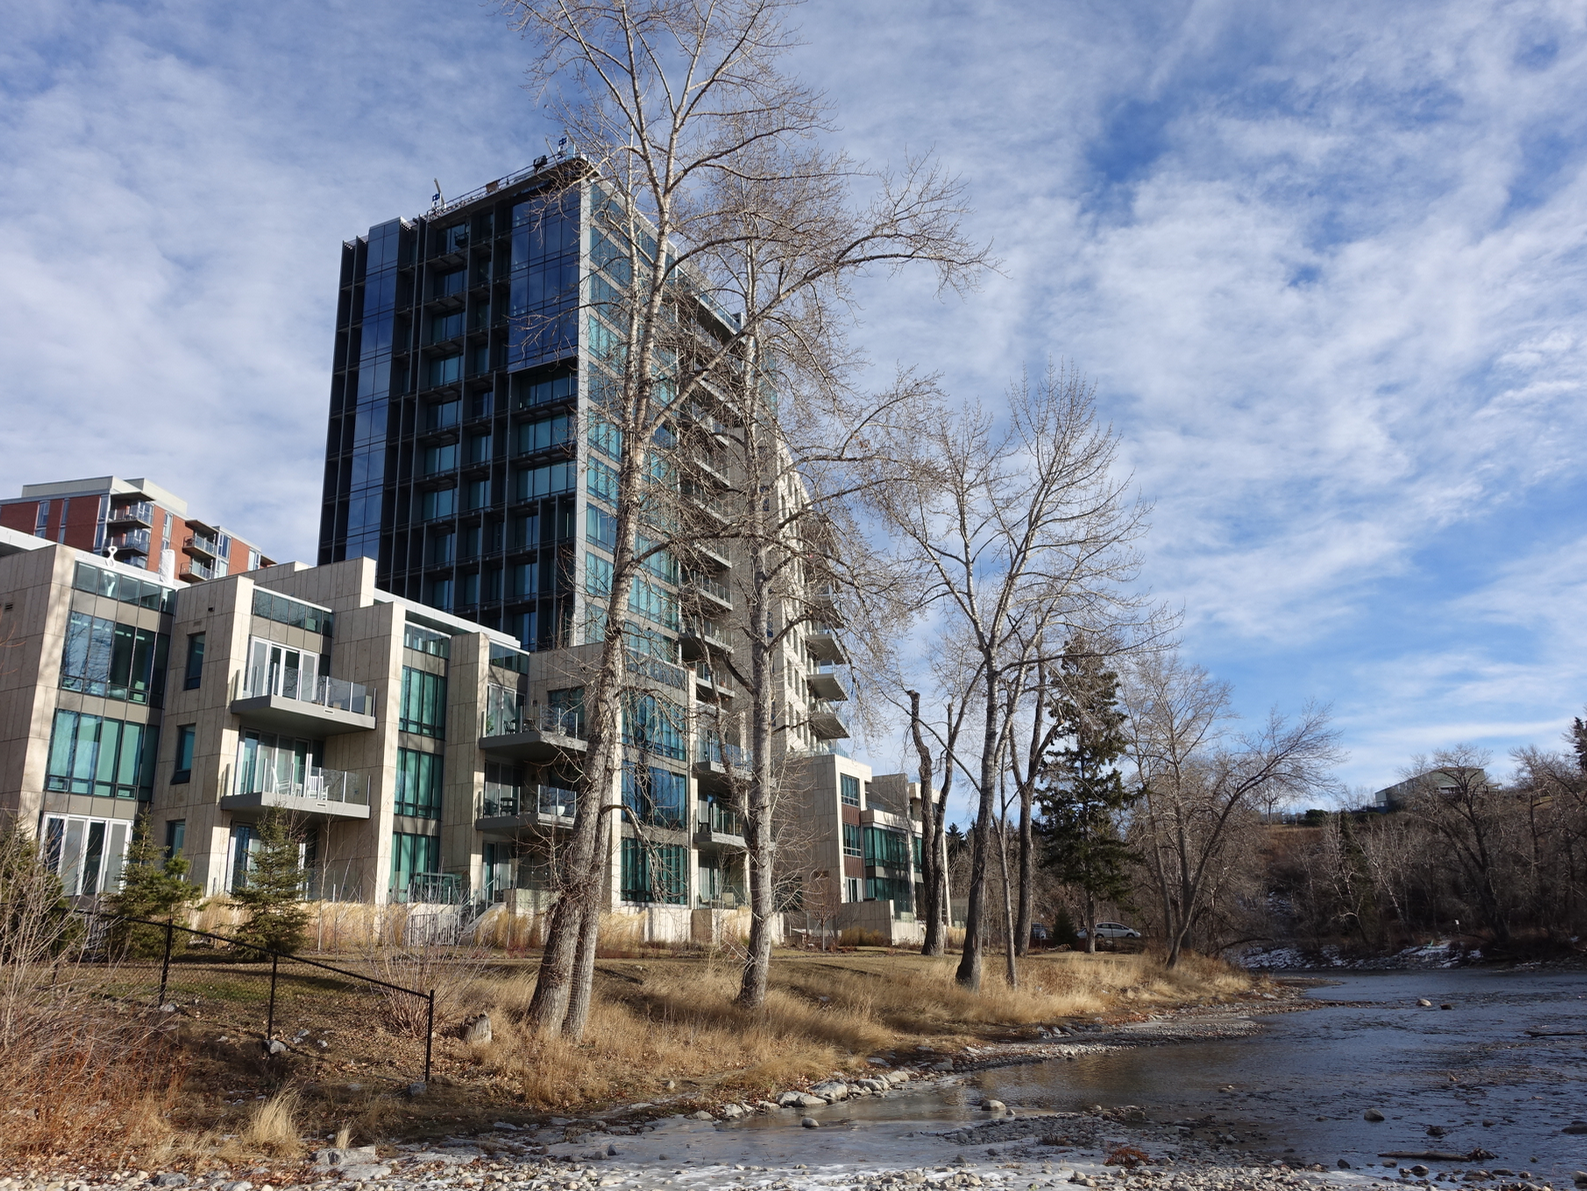 It is also home to multi-million dollar waterfront condos along the Elbow River.